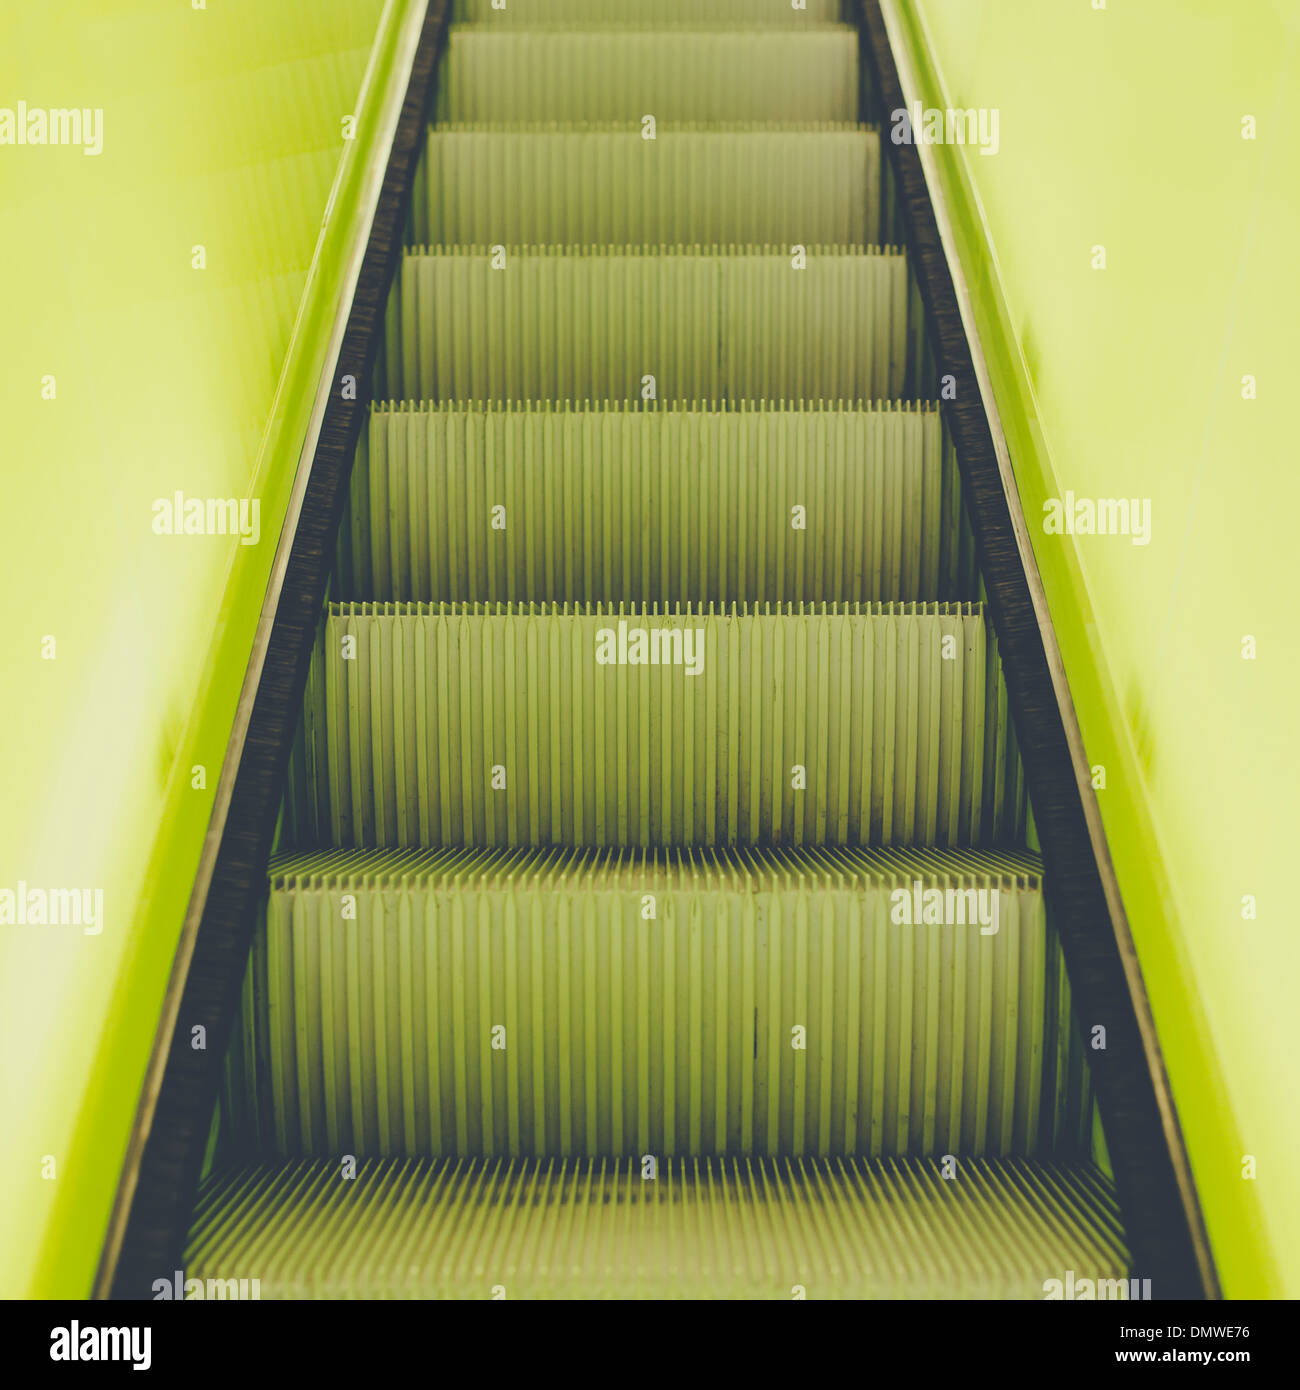 A flight of steps an escalator with a yellow painted border stripe on each side. - Stock Image